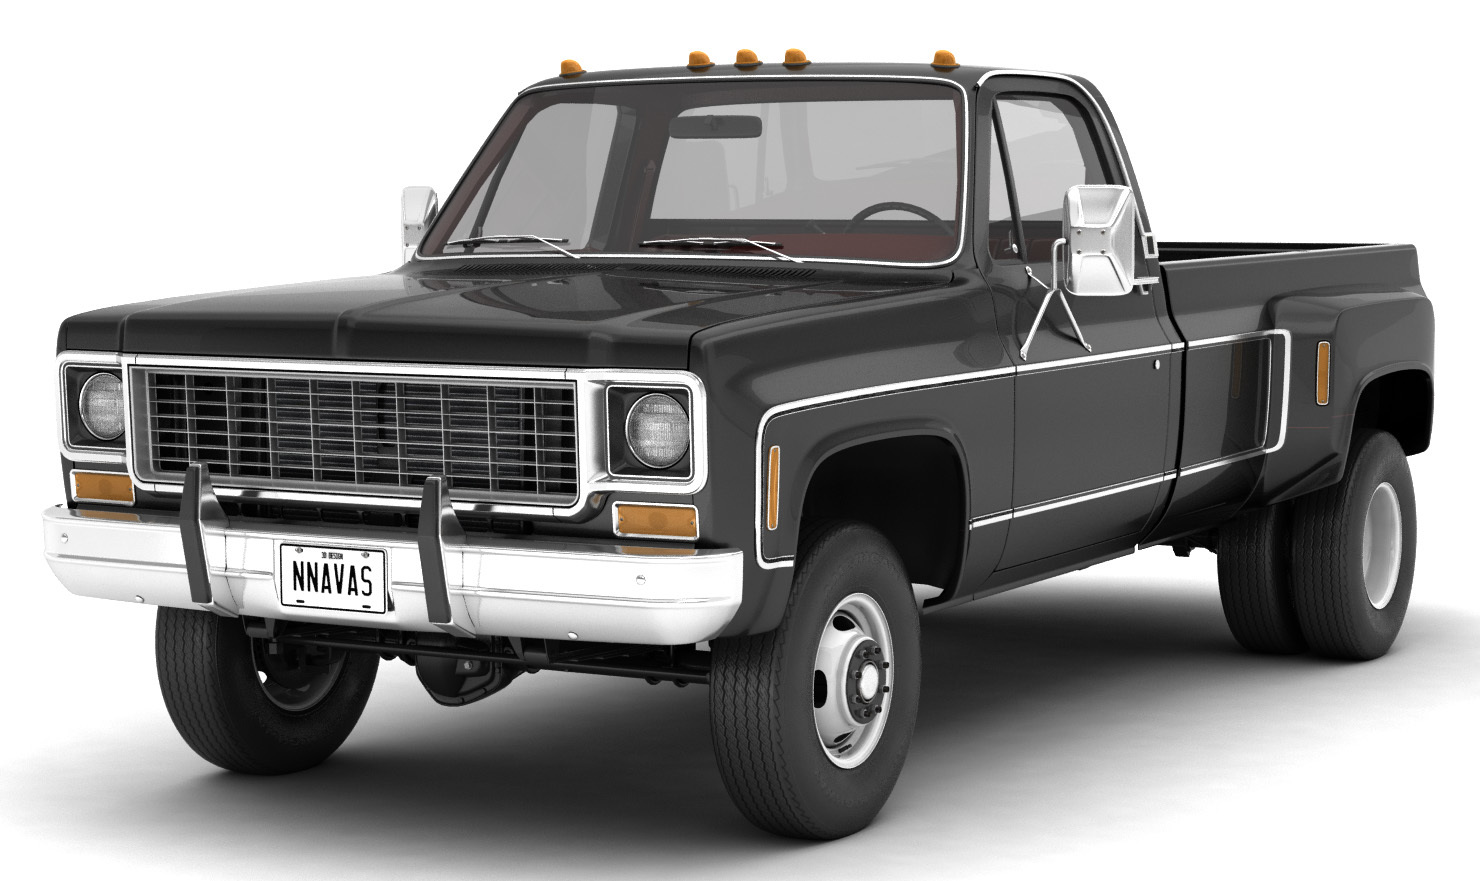 GENERIC 4WD DUALLY PICKUP TRUCK 8 Extended License